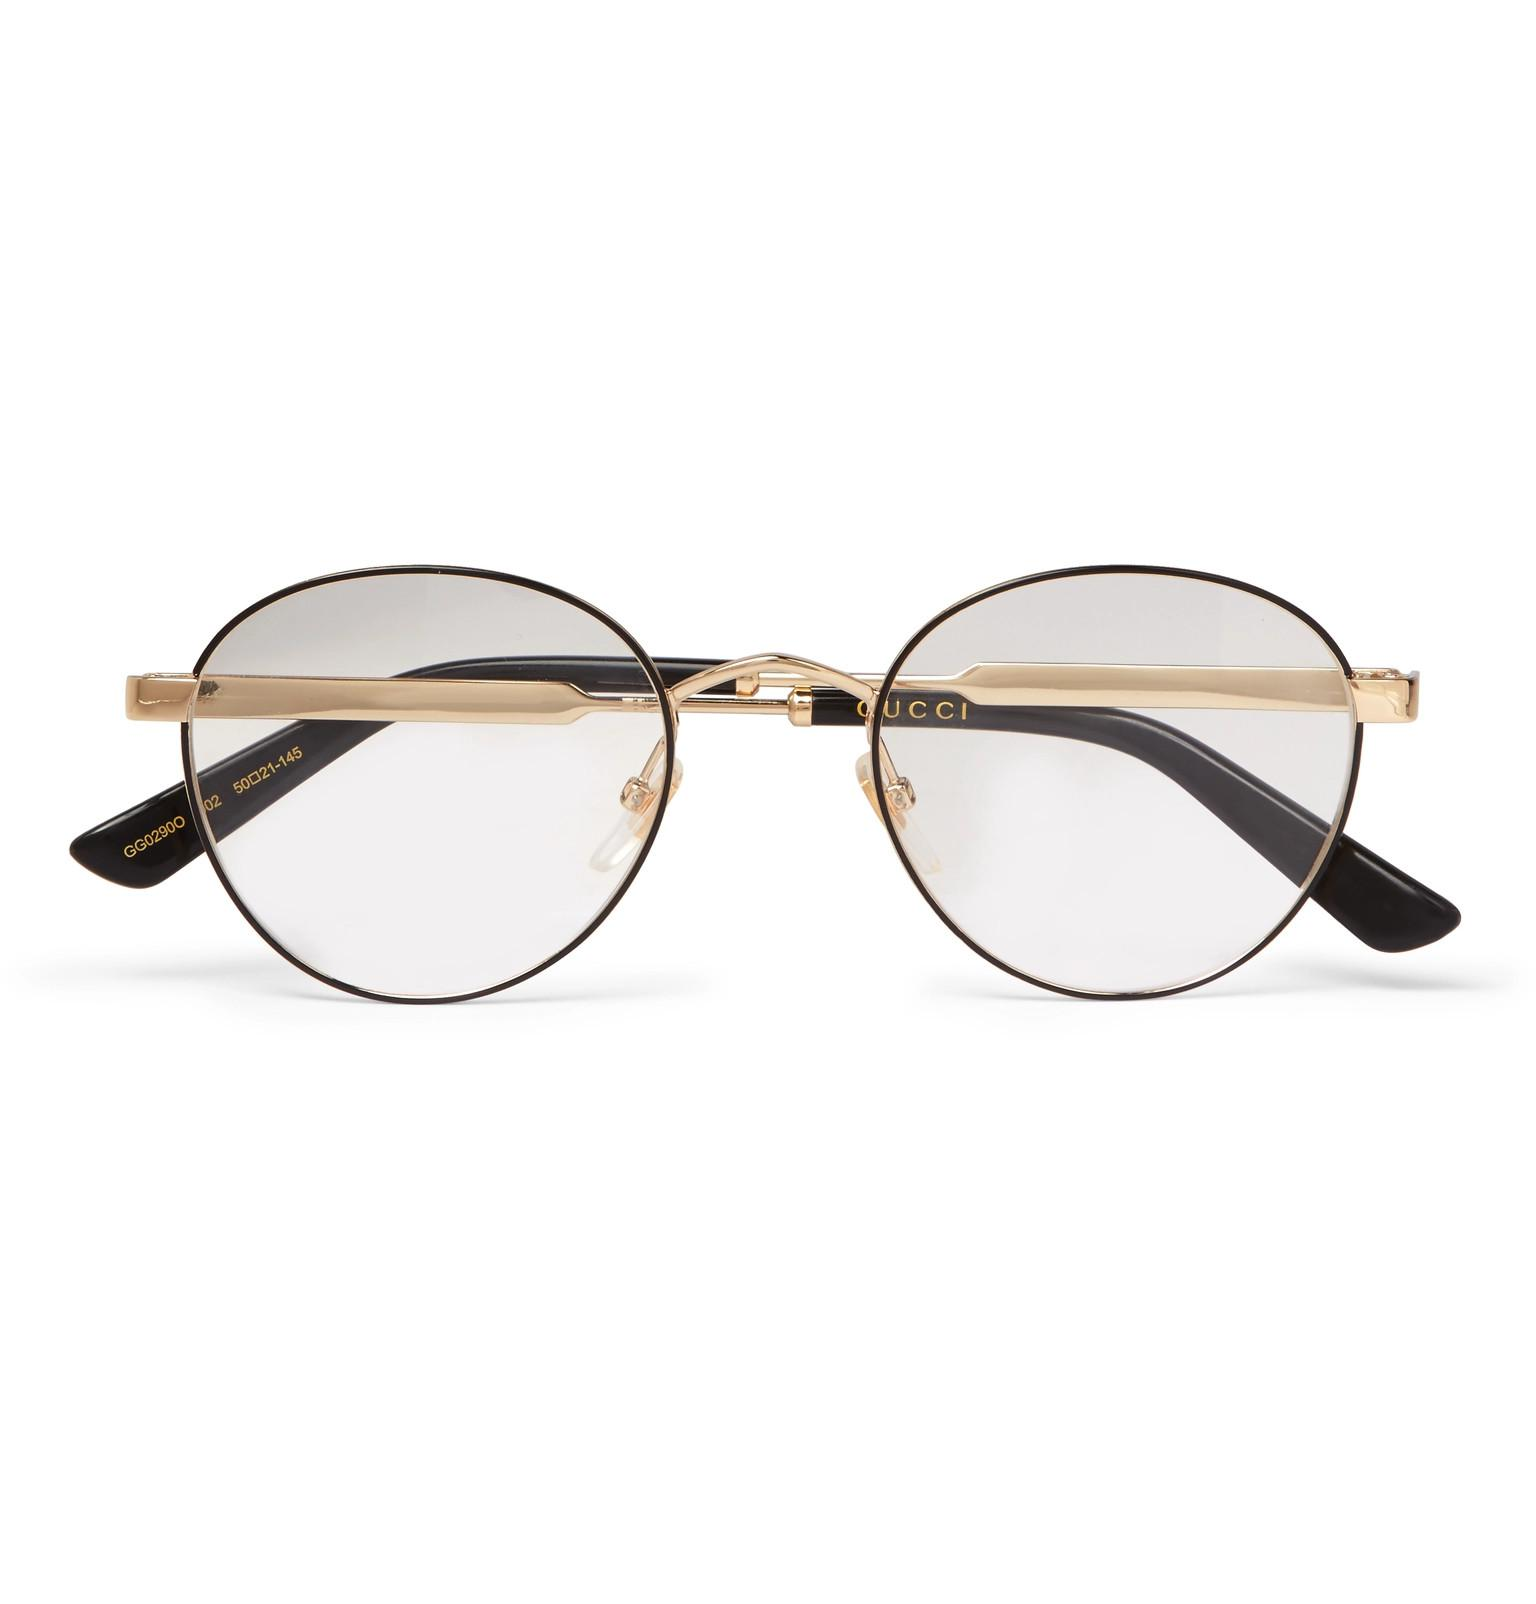 7348ef0eddfbd Gucci Round-frame Enamelled Gold-tone Optical Glasses in Brown for ...